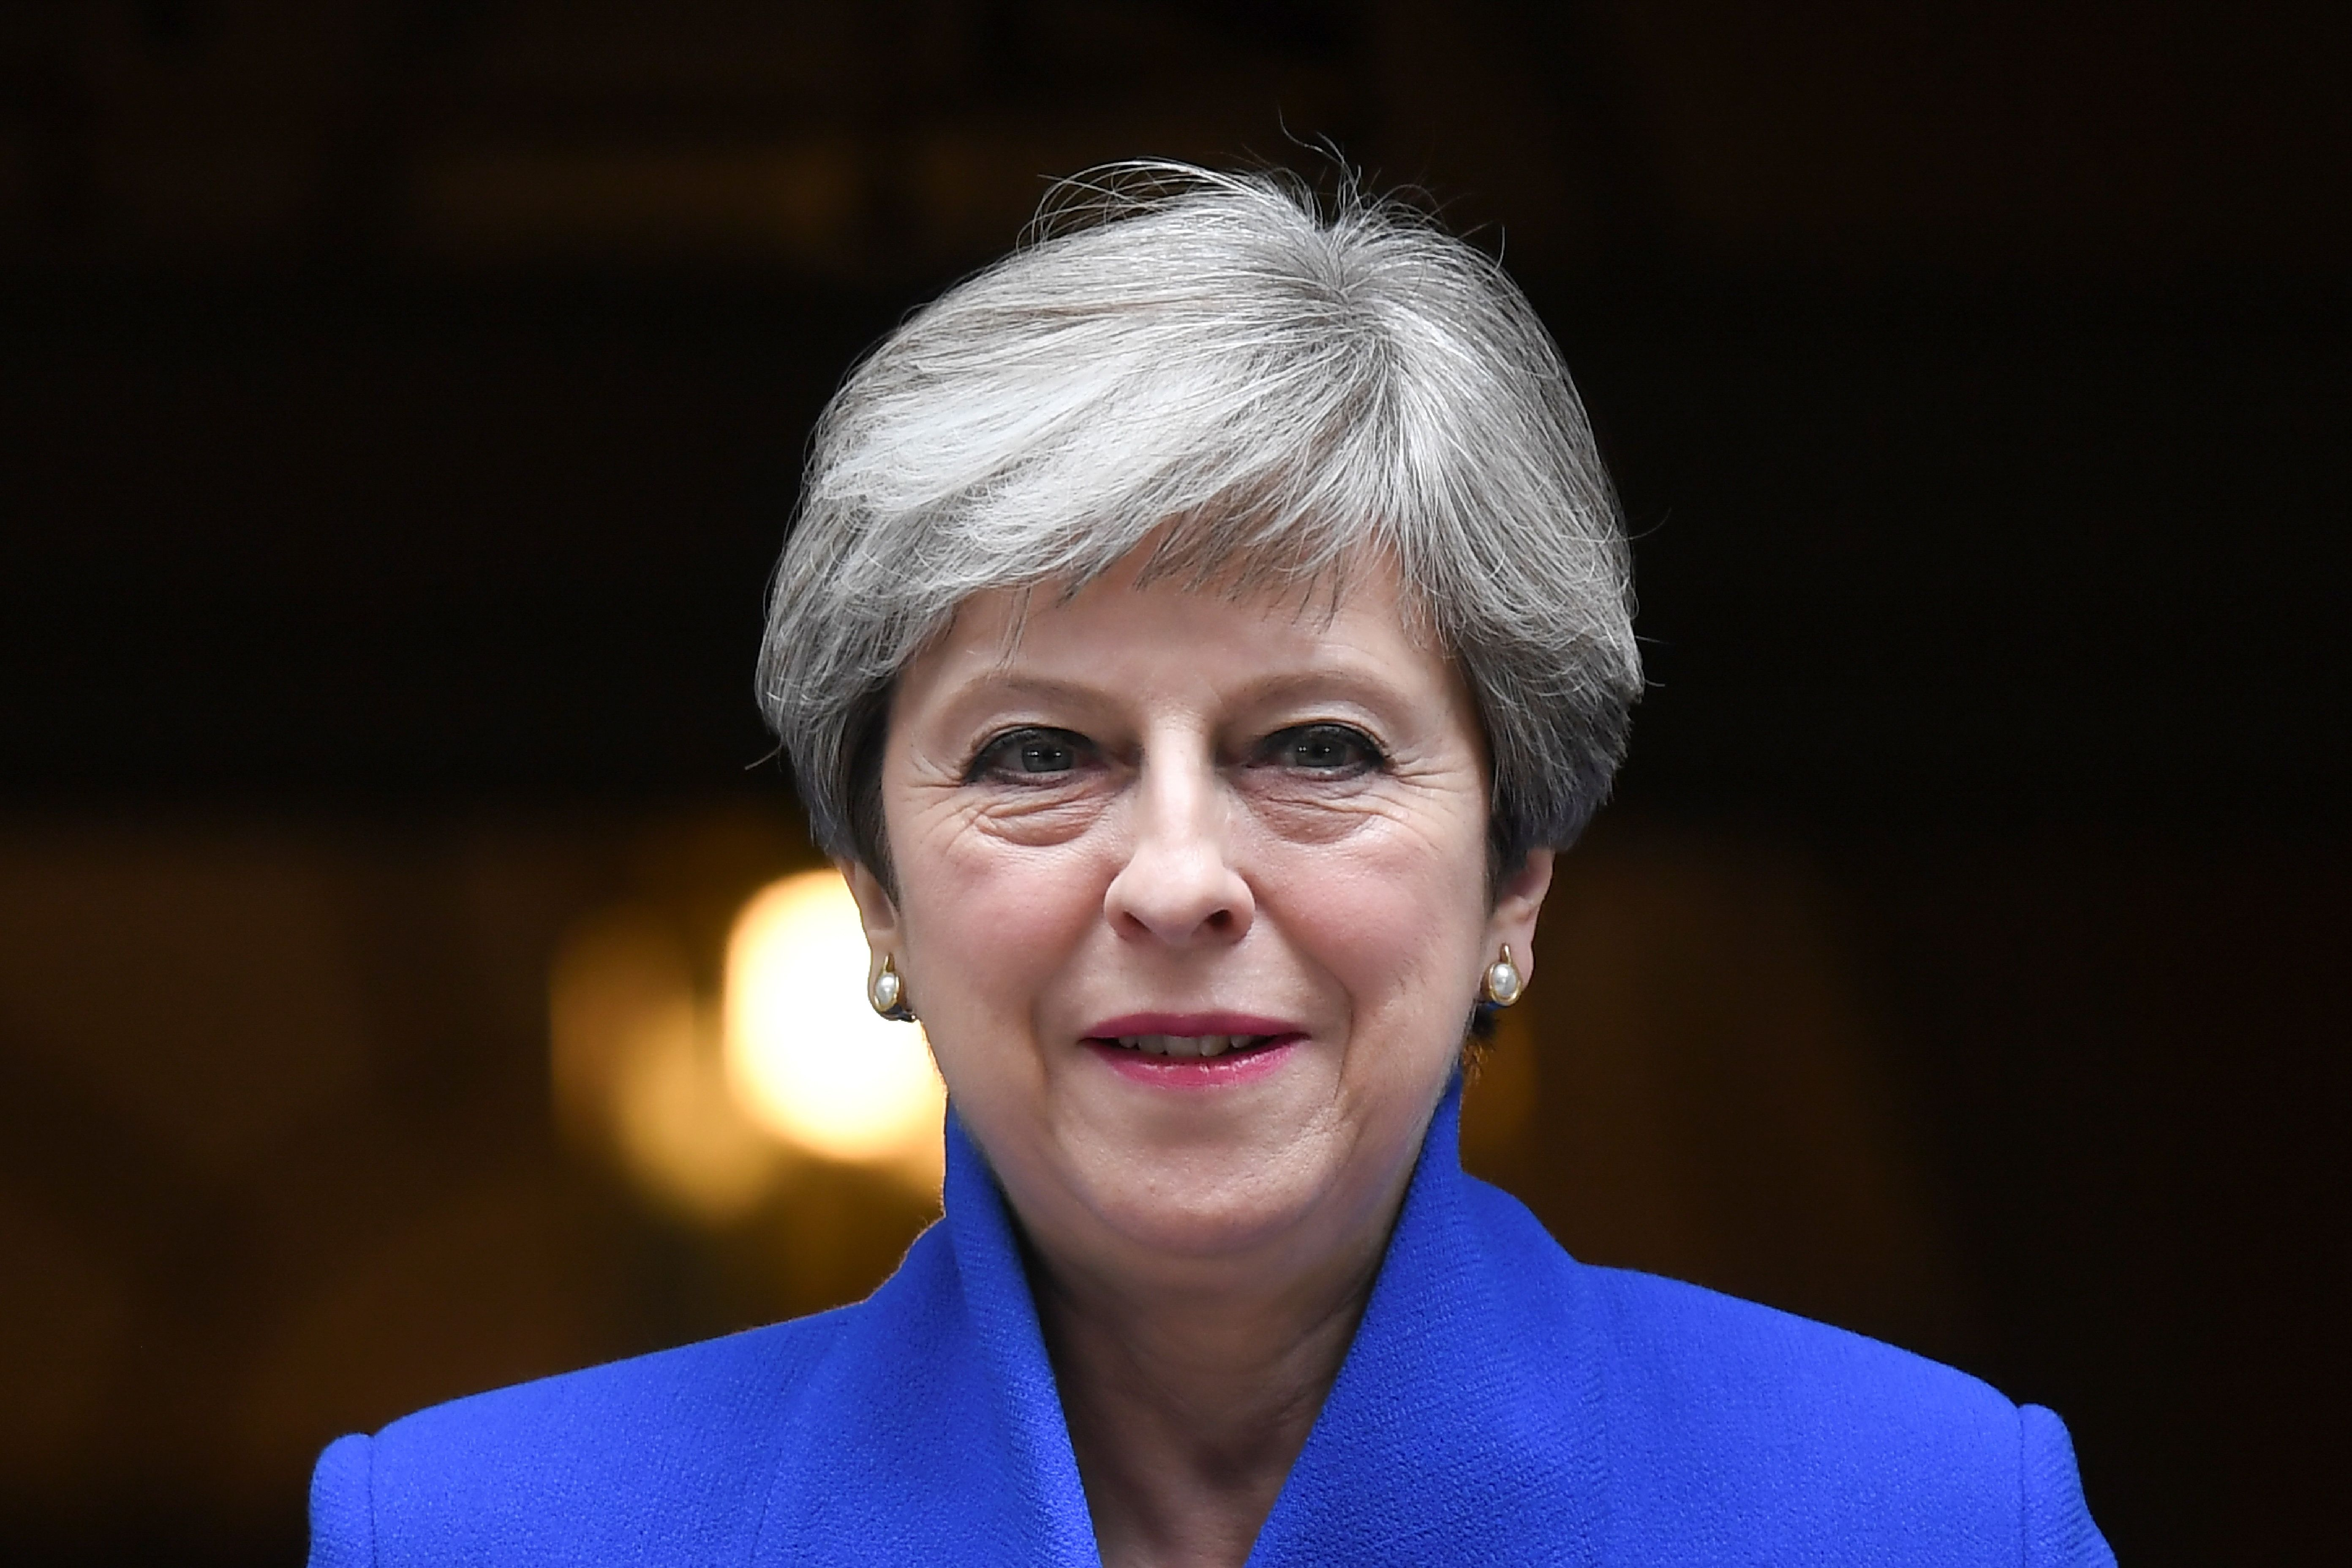 Britain's Prime Minister and leader of the Conservative Party Theresa May leaves 10 Downing Street in London, on June 9, 2017.